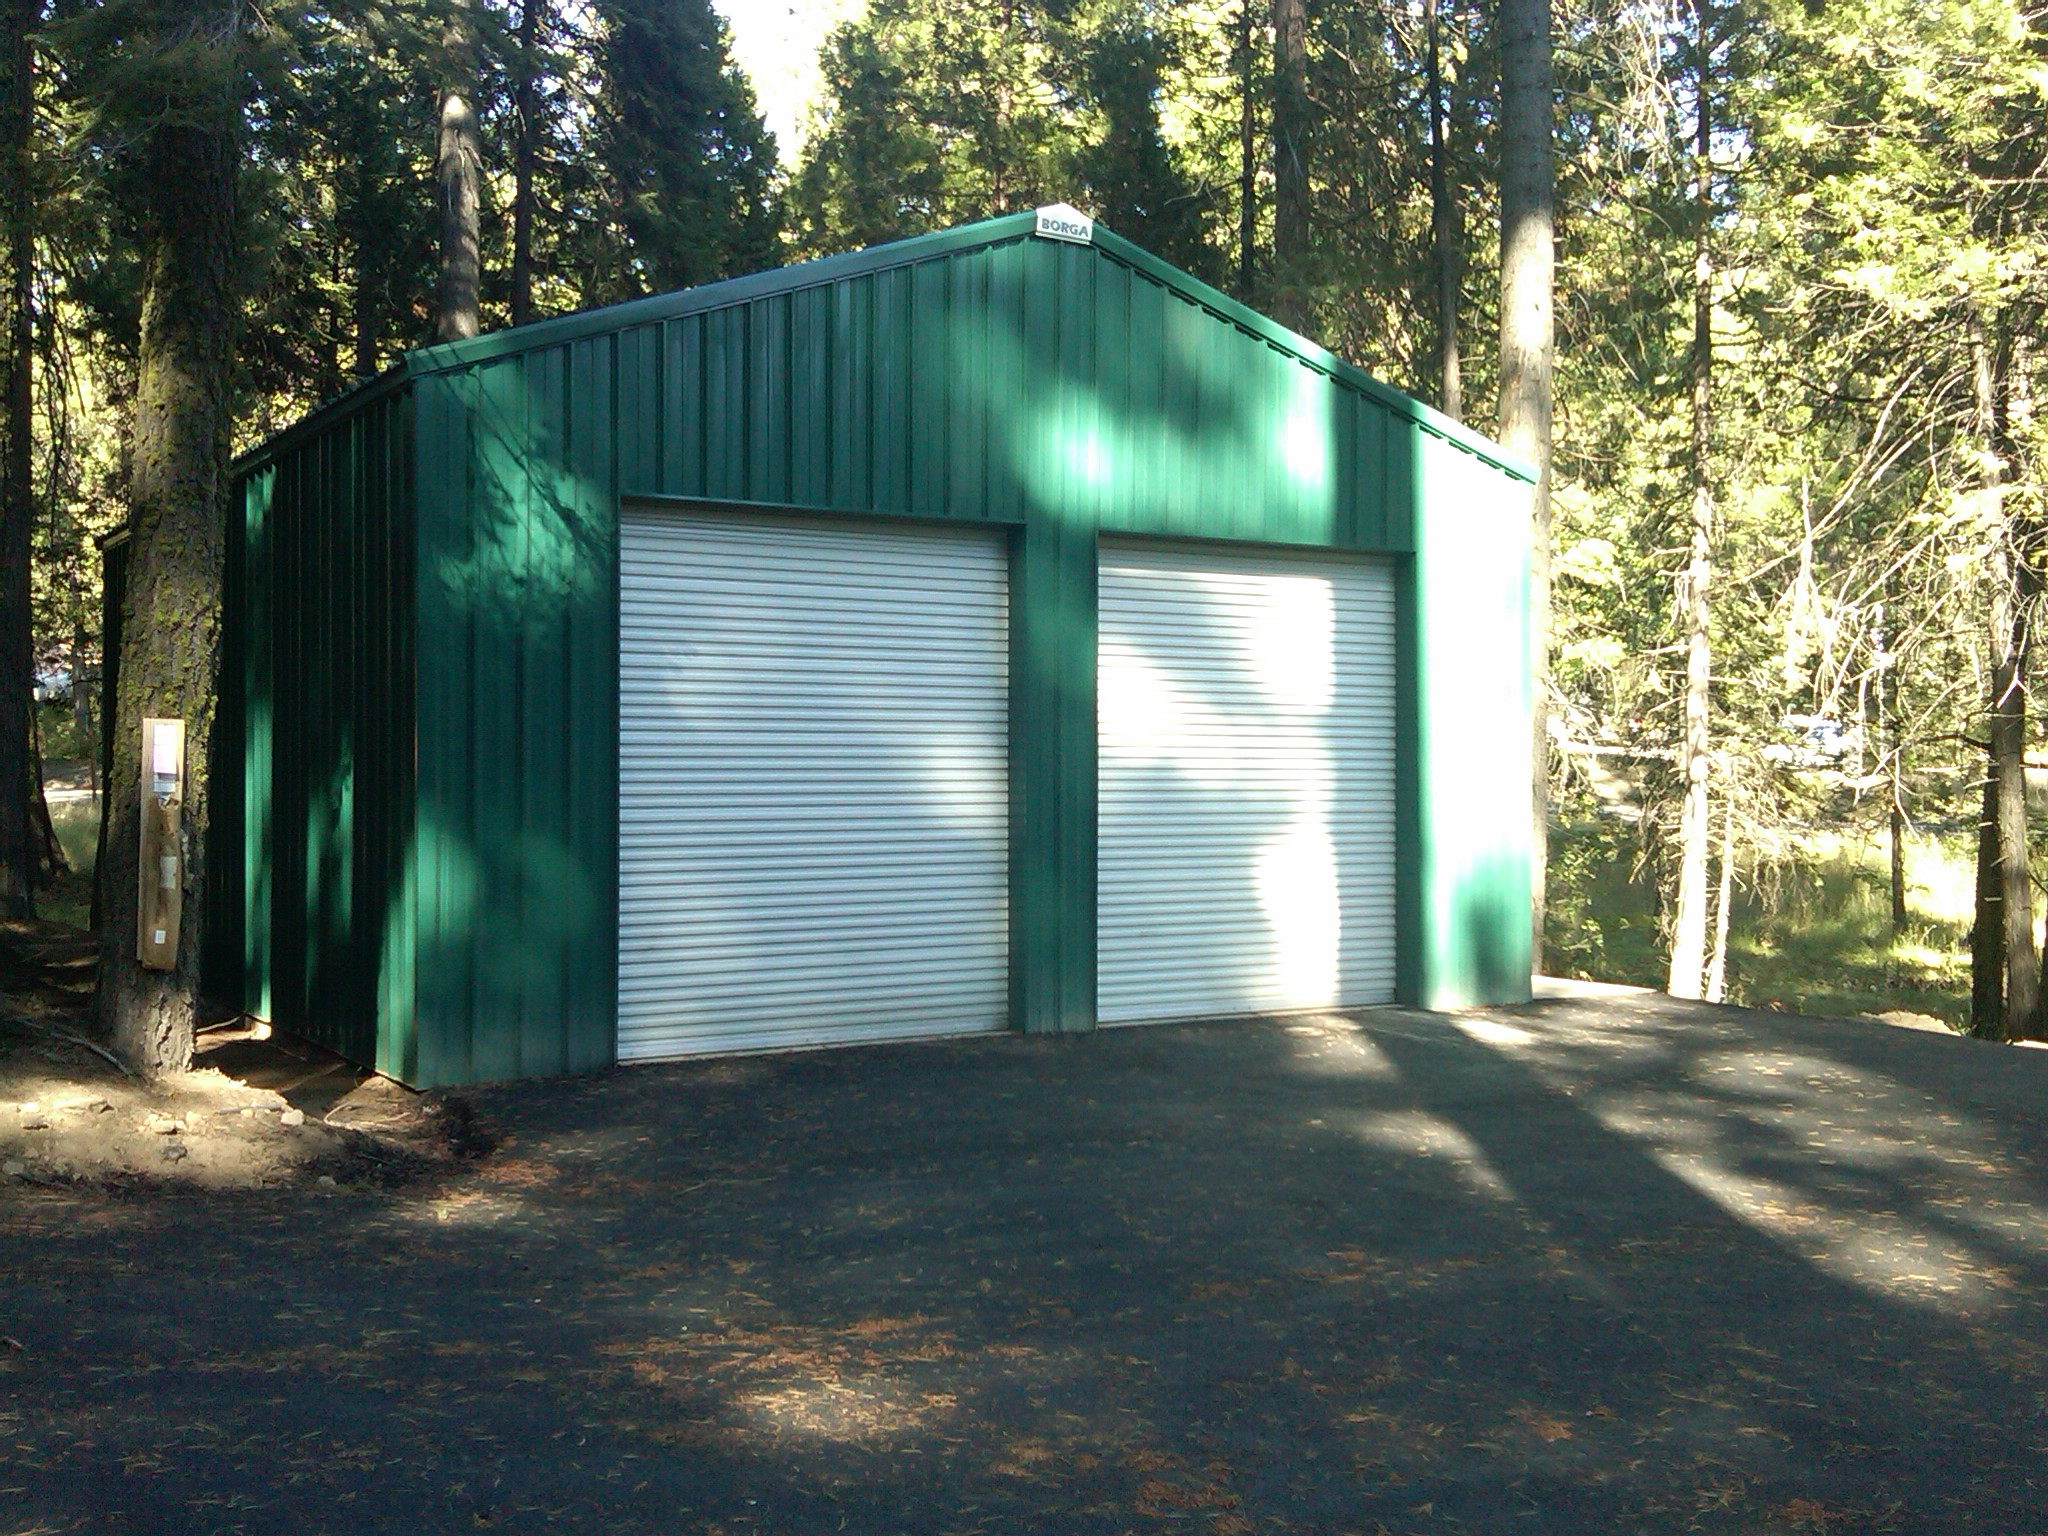 borga steel buildings components fresno ca california shed kit fowler white green forest woods trees diy do it yourself